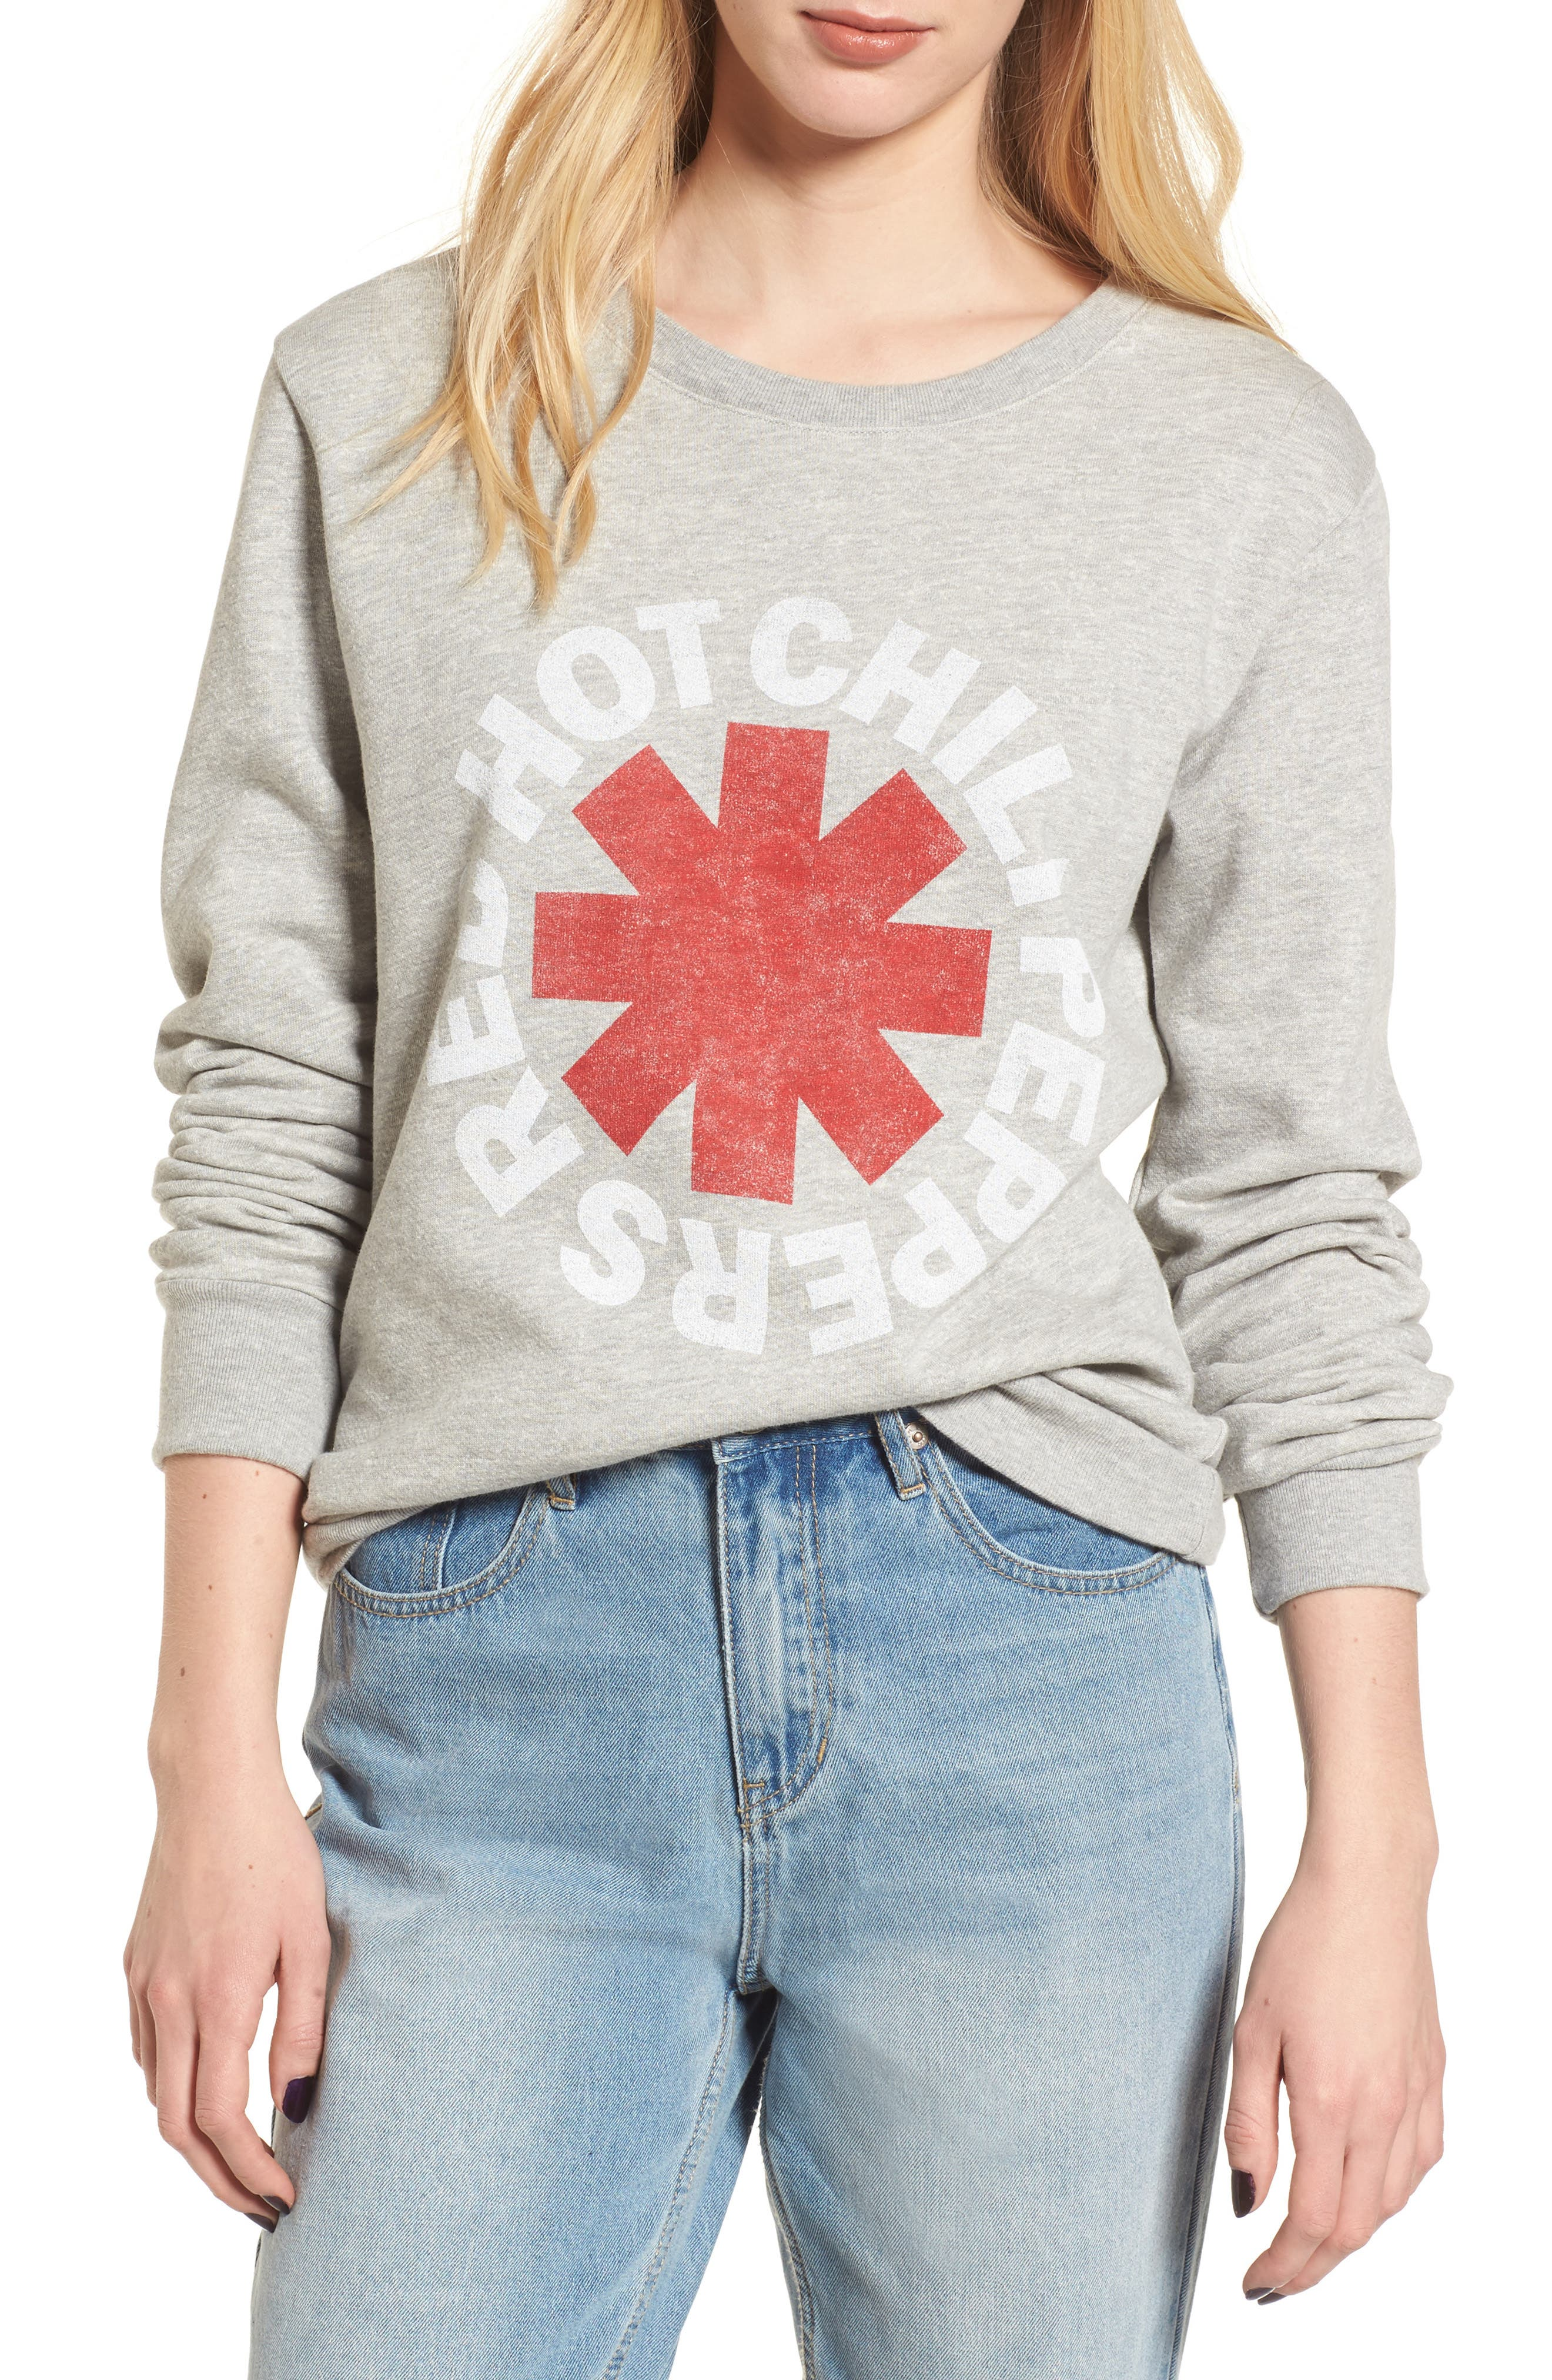 Alternate Image 1 Selected - Day by Daydreamer Red Hot Chili Peppers Sweatshirt